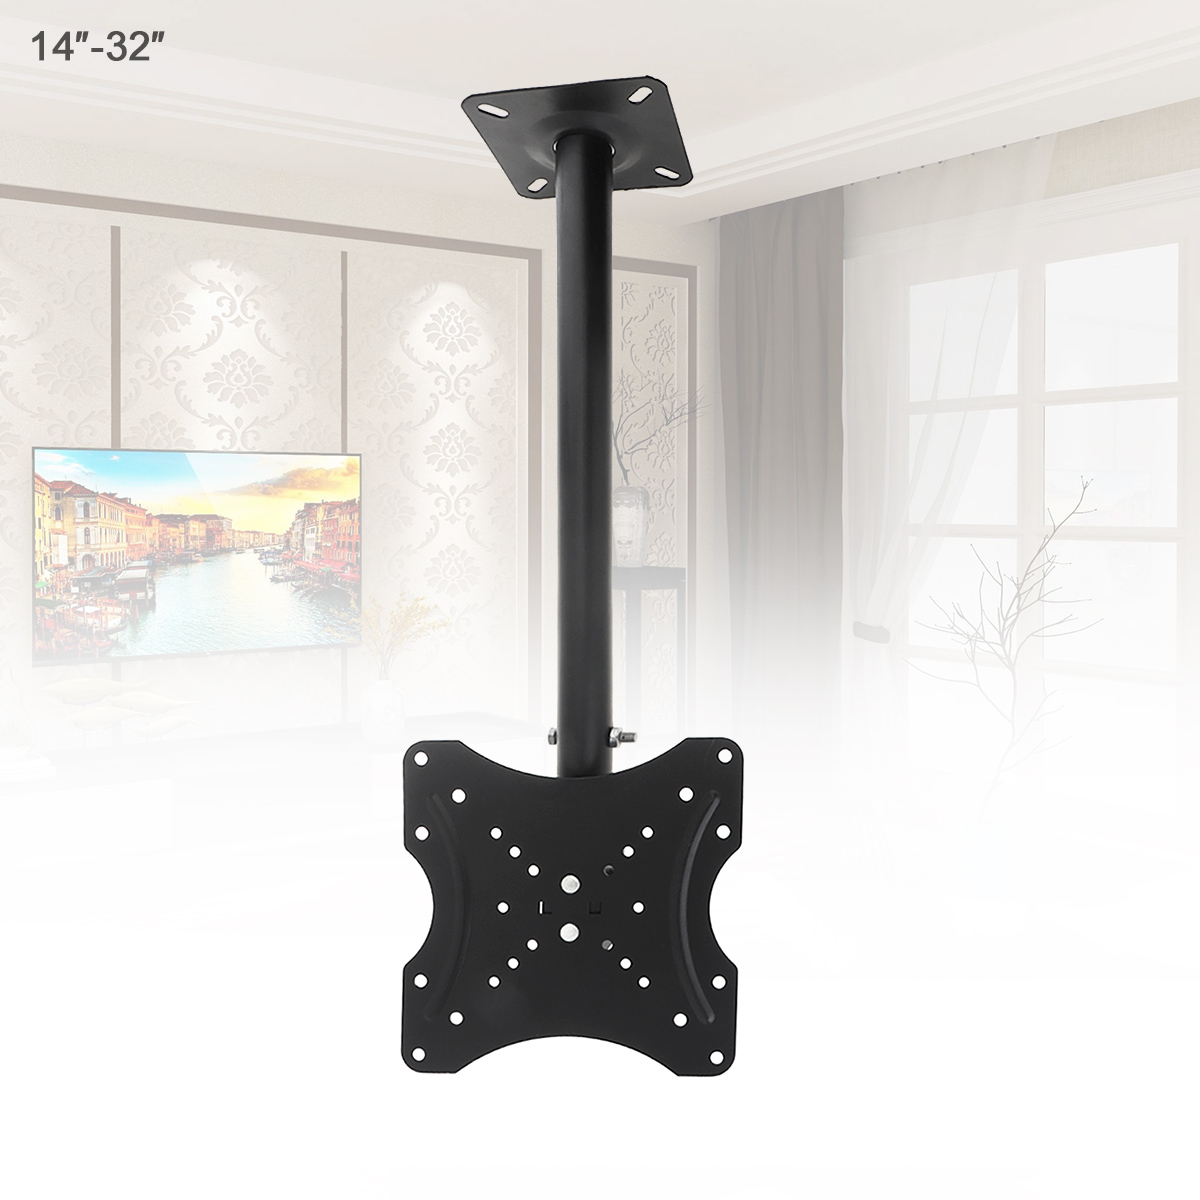 Universal 25KG Adjustable TV Flat Panel Wall Hanger Support 360° Rotation with Cable Clip for 14-<font><b>32Inch</b></font> LCD LED <font><b>Monitor</b></font> Flat image